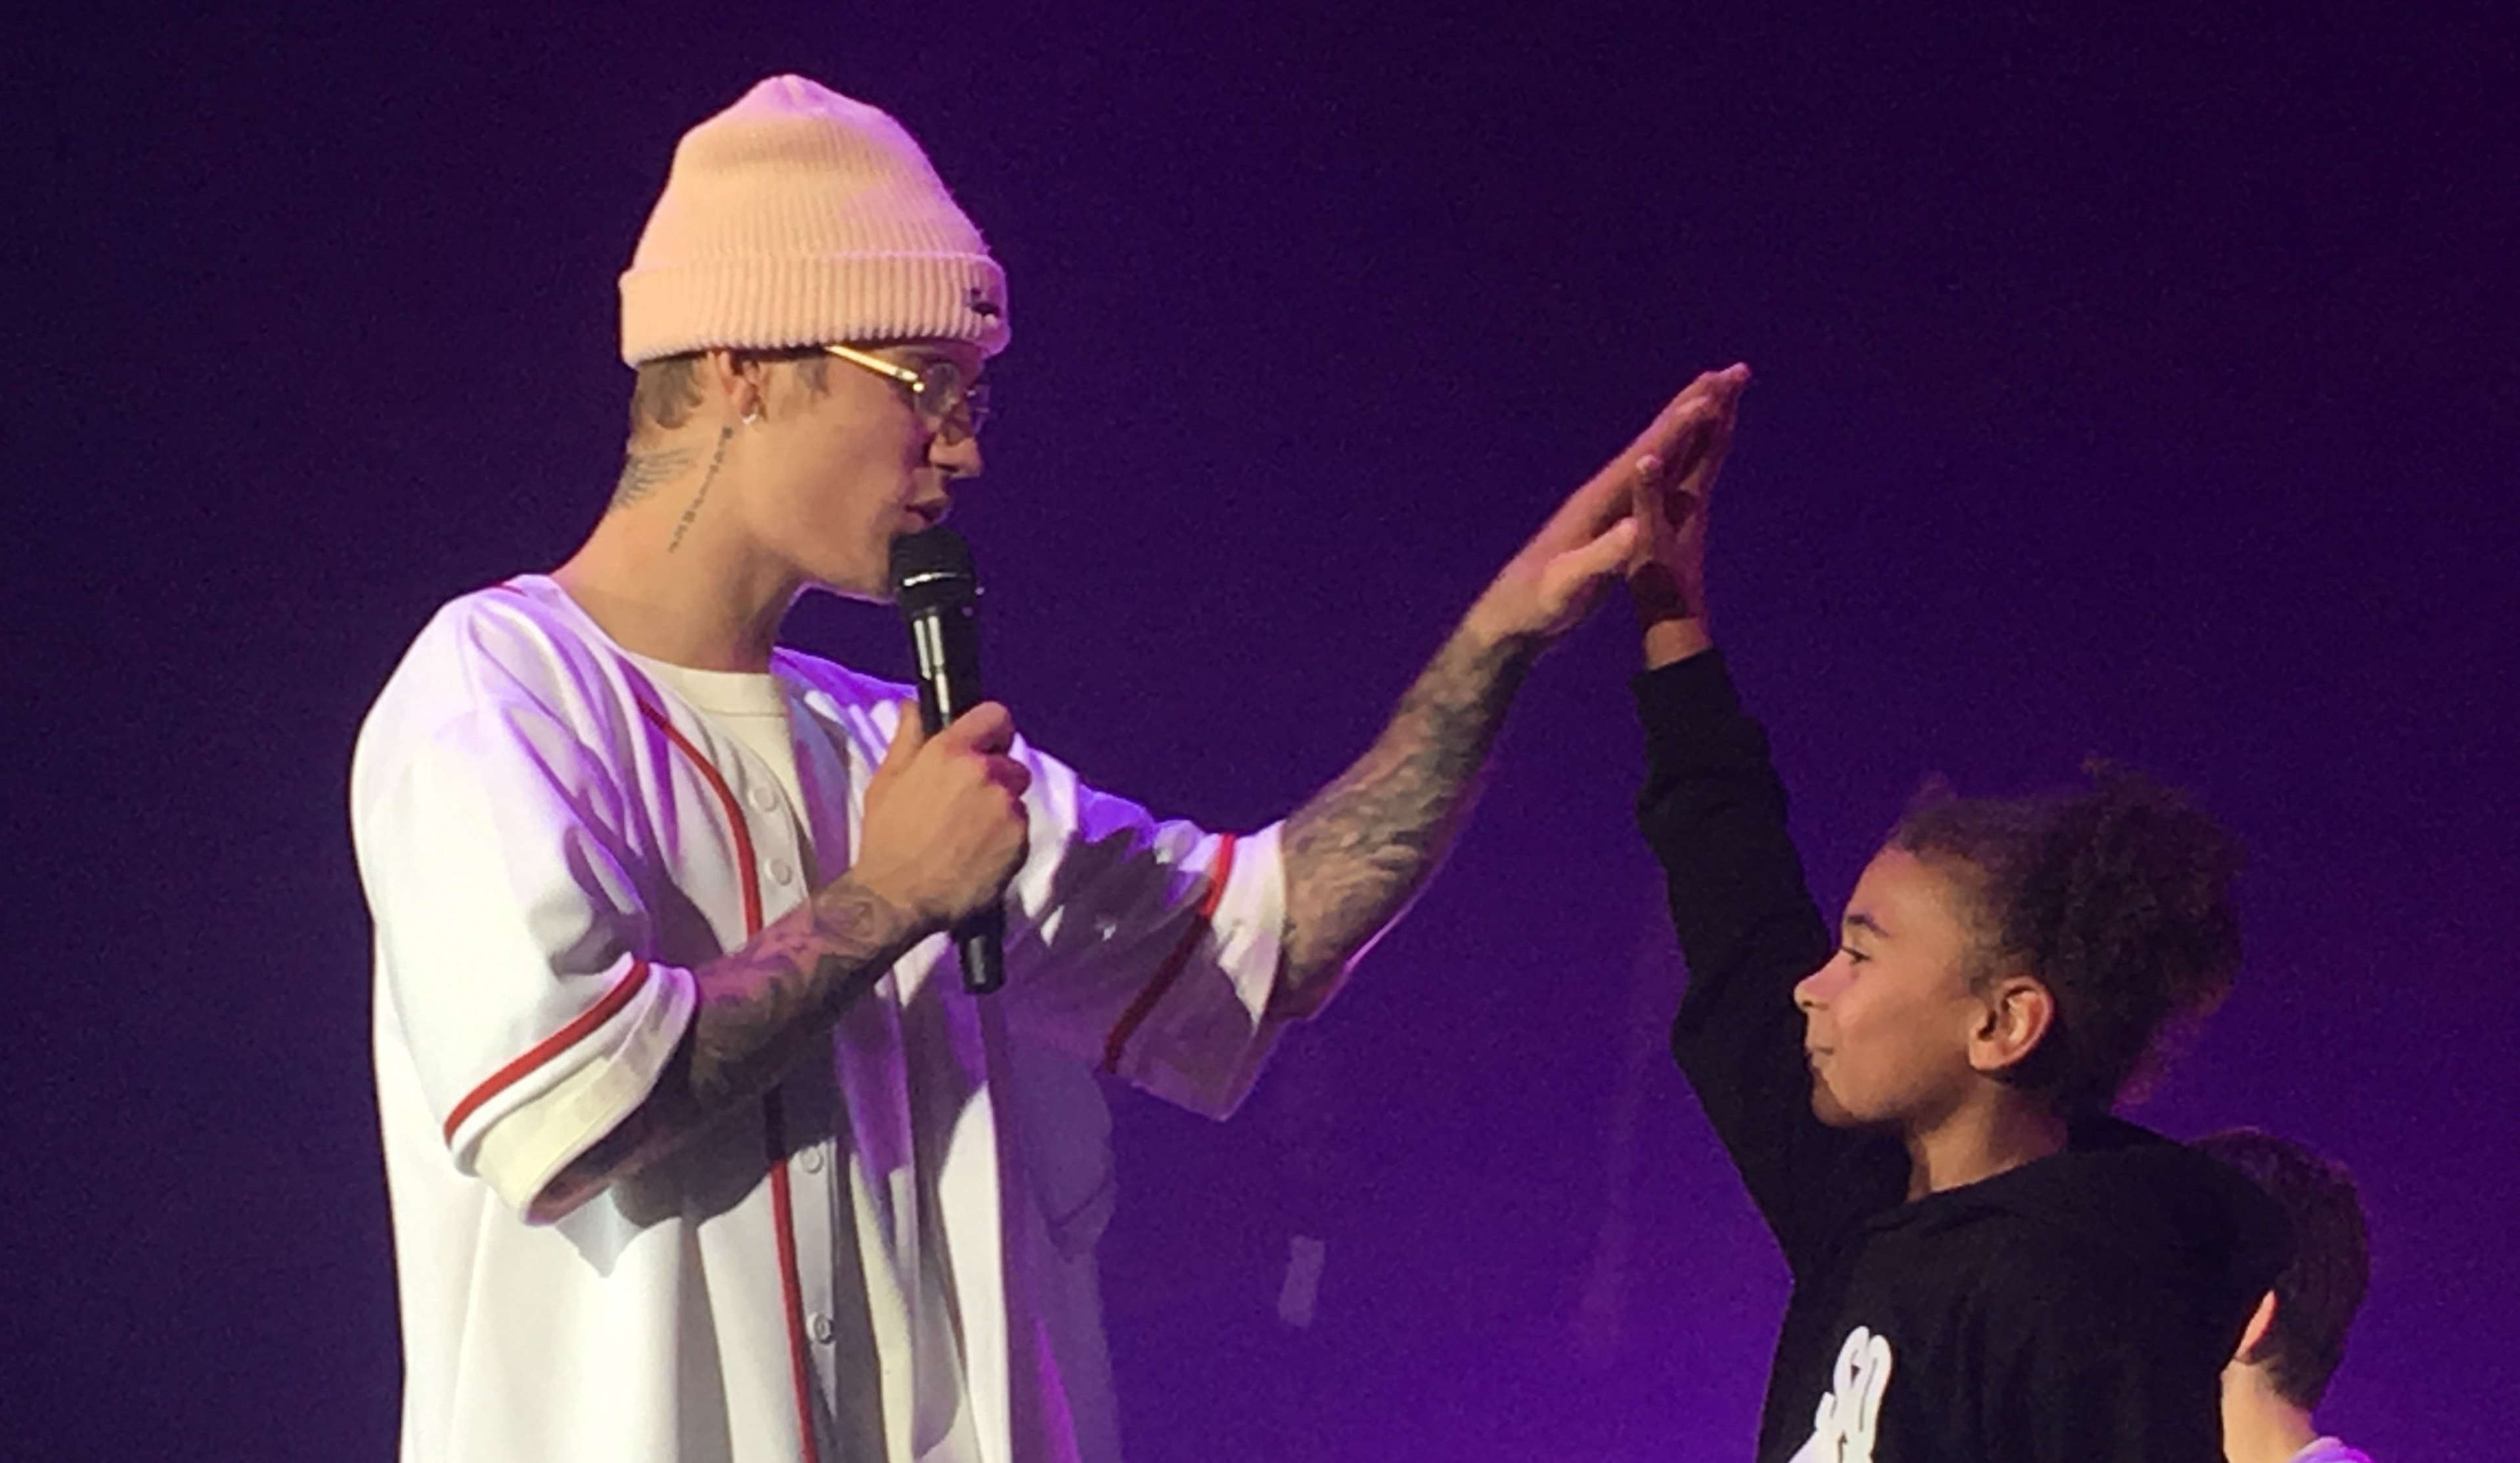 The fan Justin Bieber punched in Barcelona takes case to his lawyers